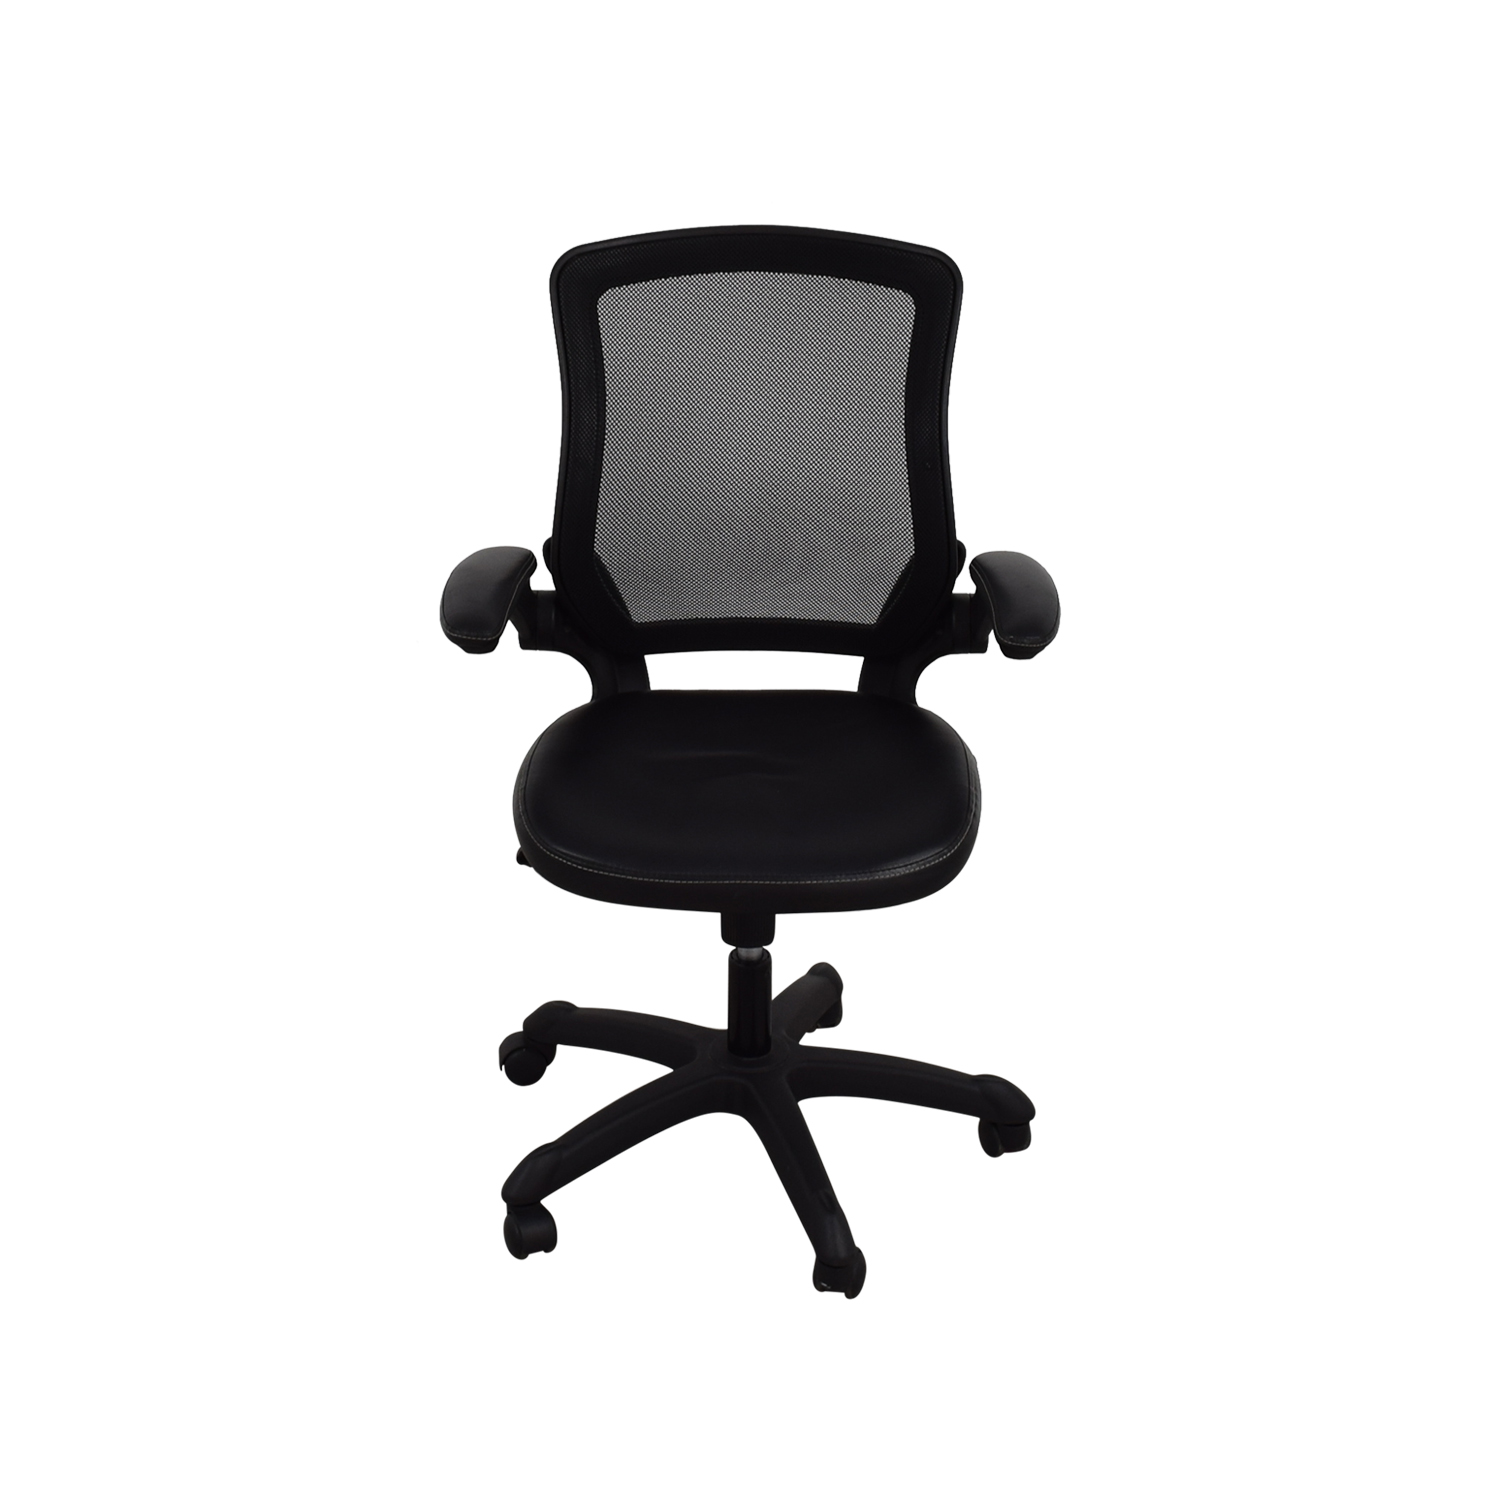 Adjustable Black Office Arm Chair coupon